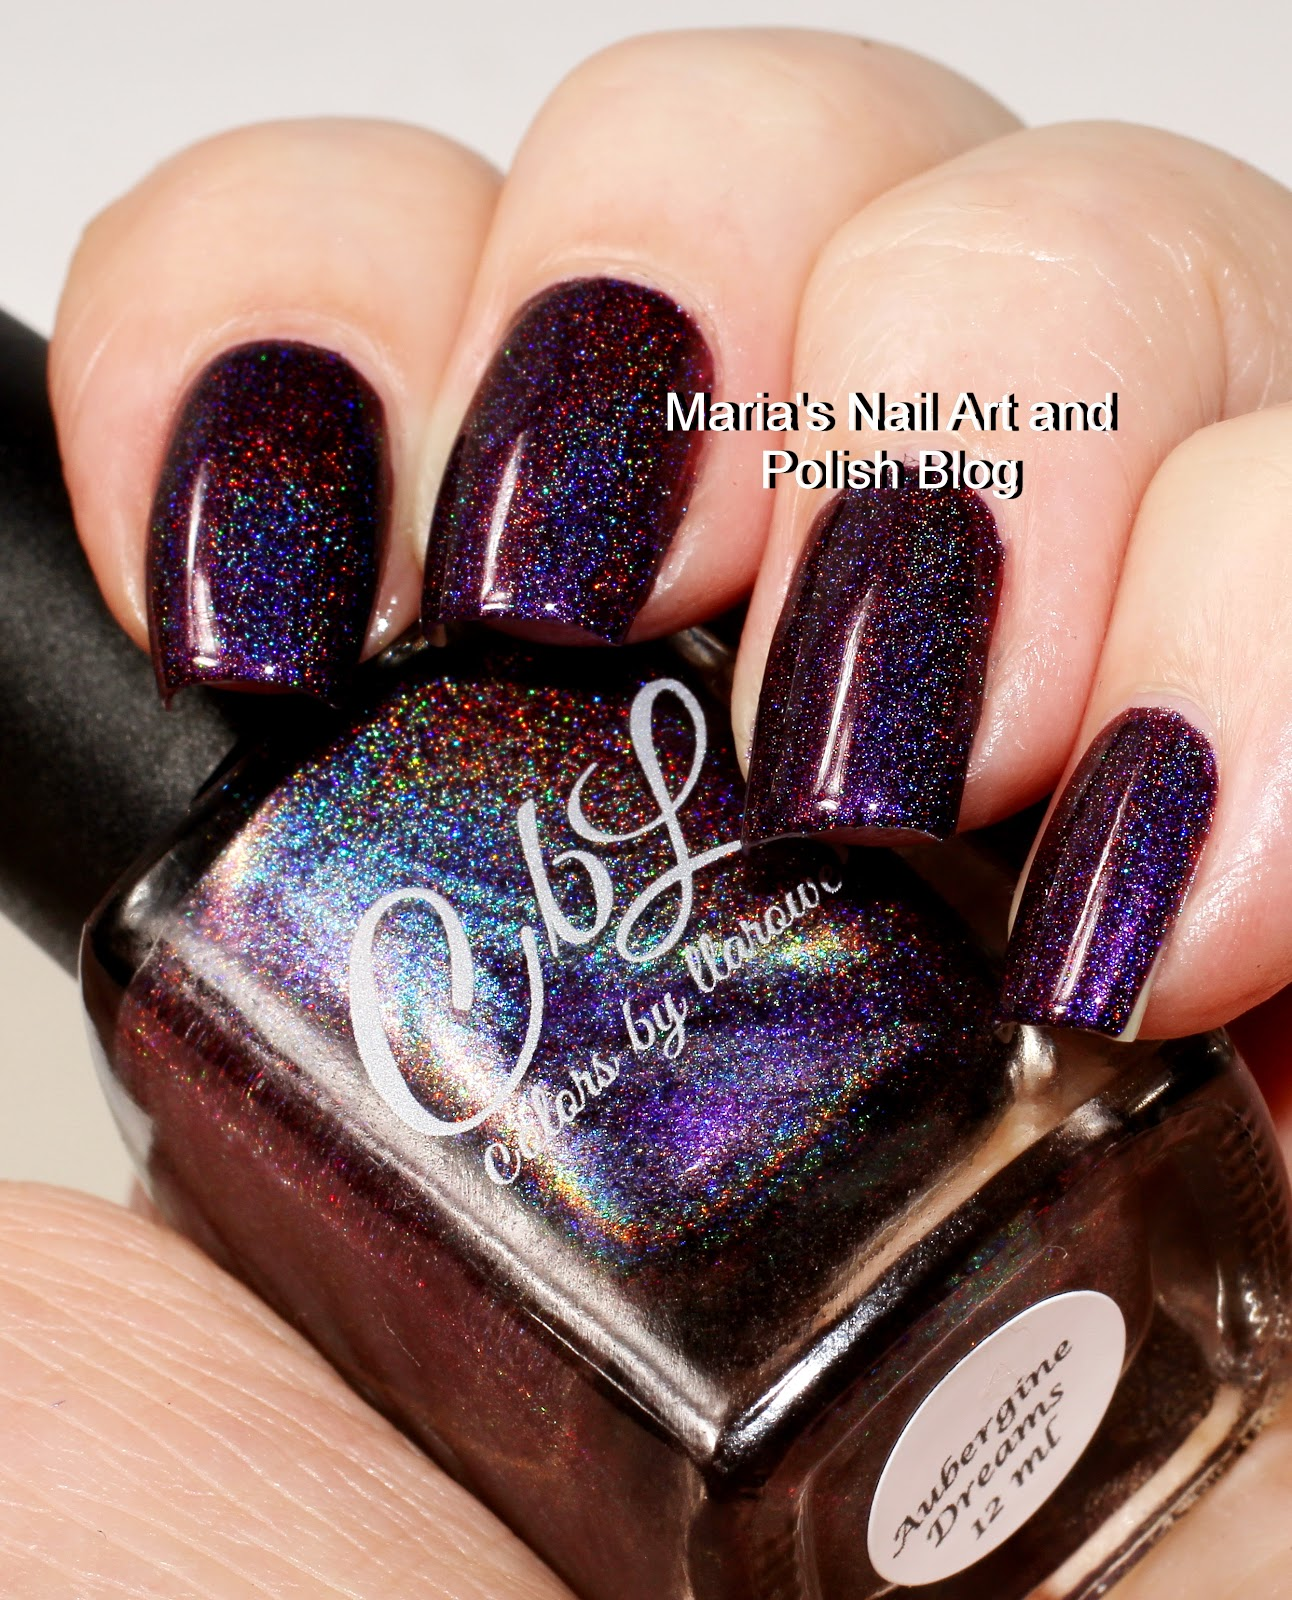 Colors By Llarowe Aubergine Dreams Is From The Fall 2017 Collection It S A Gorgeous Eggplant Purple Holo With Lovely Depth